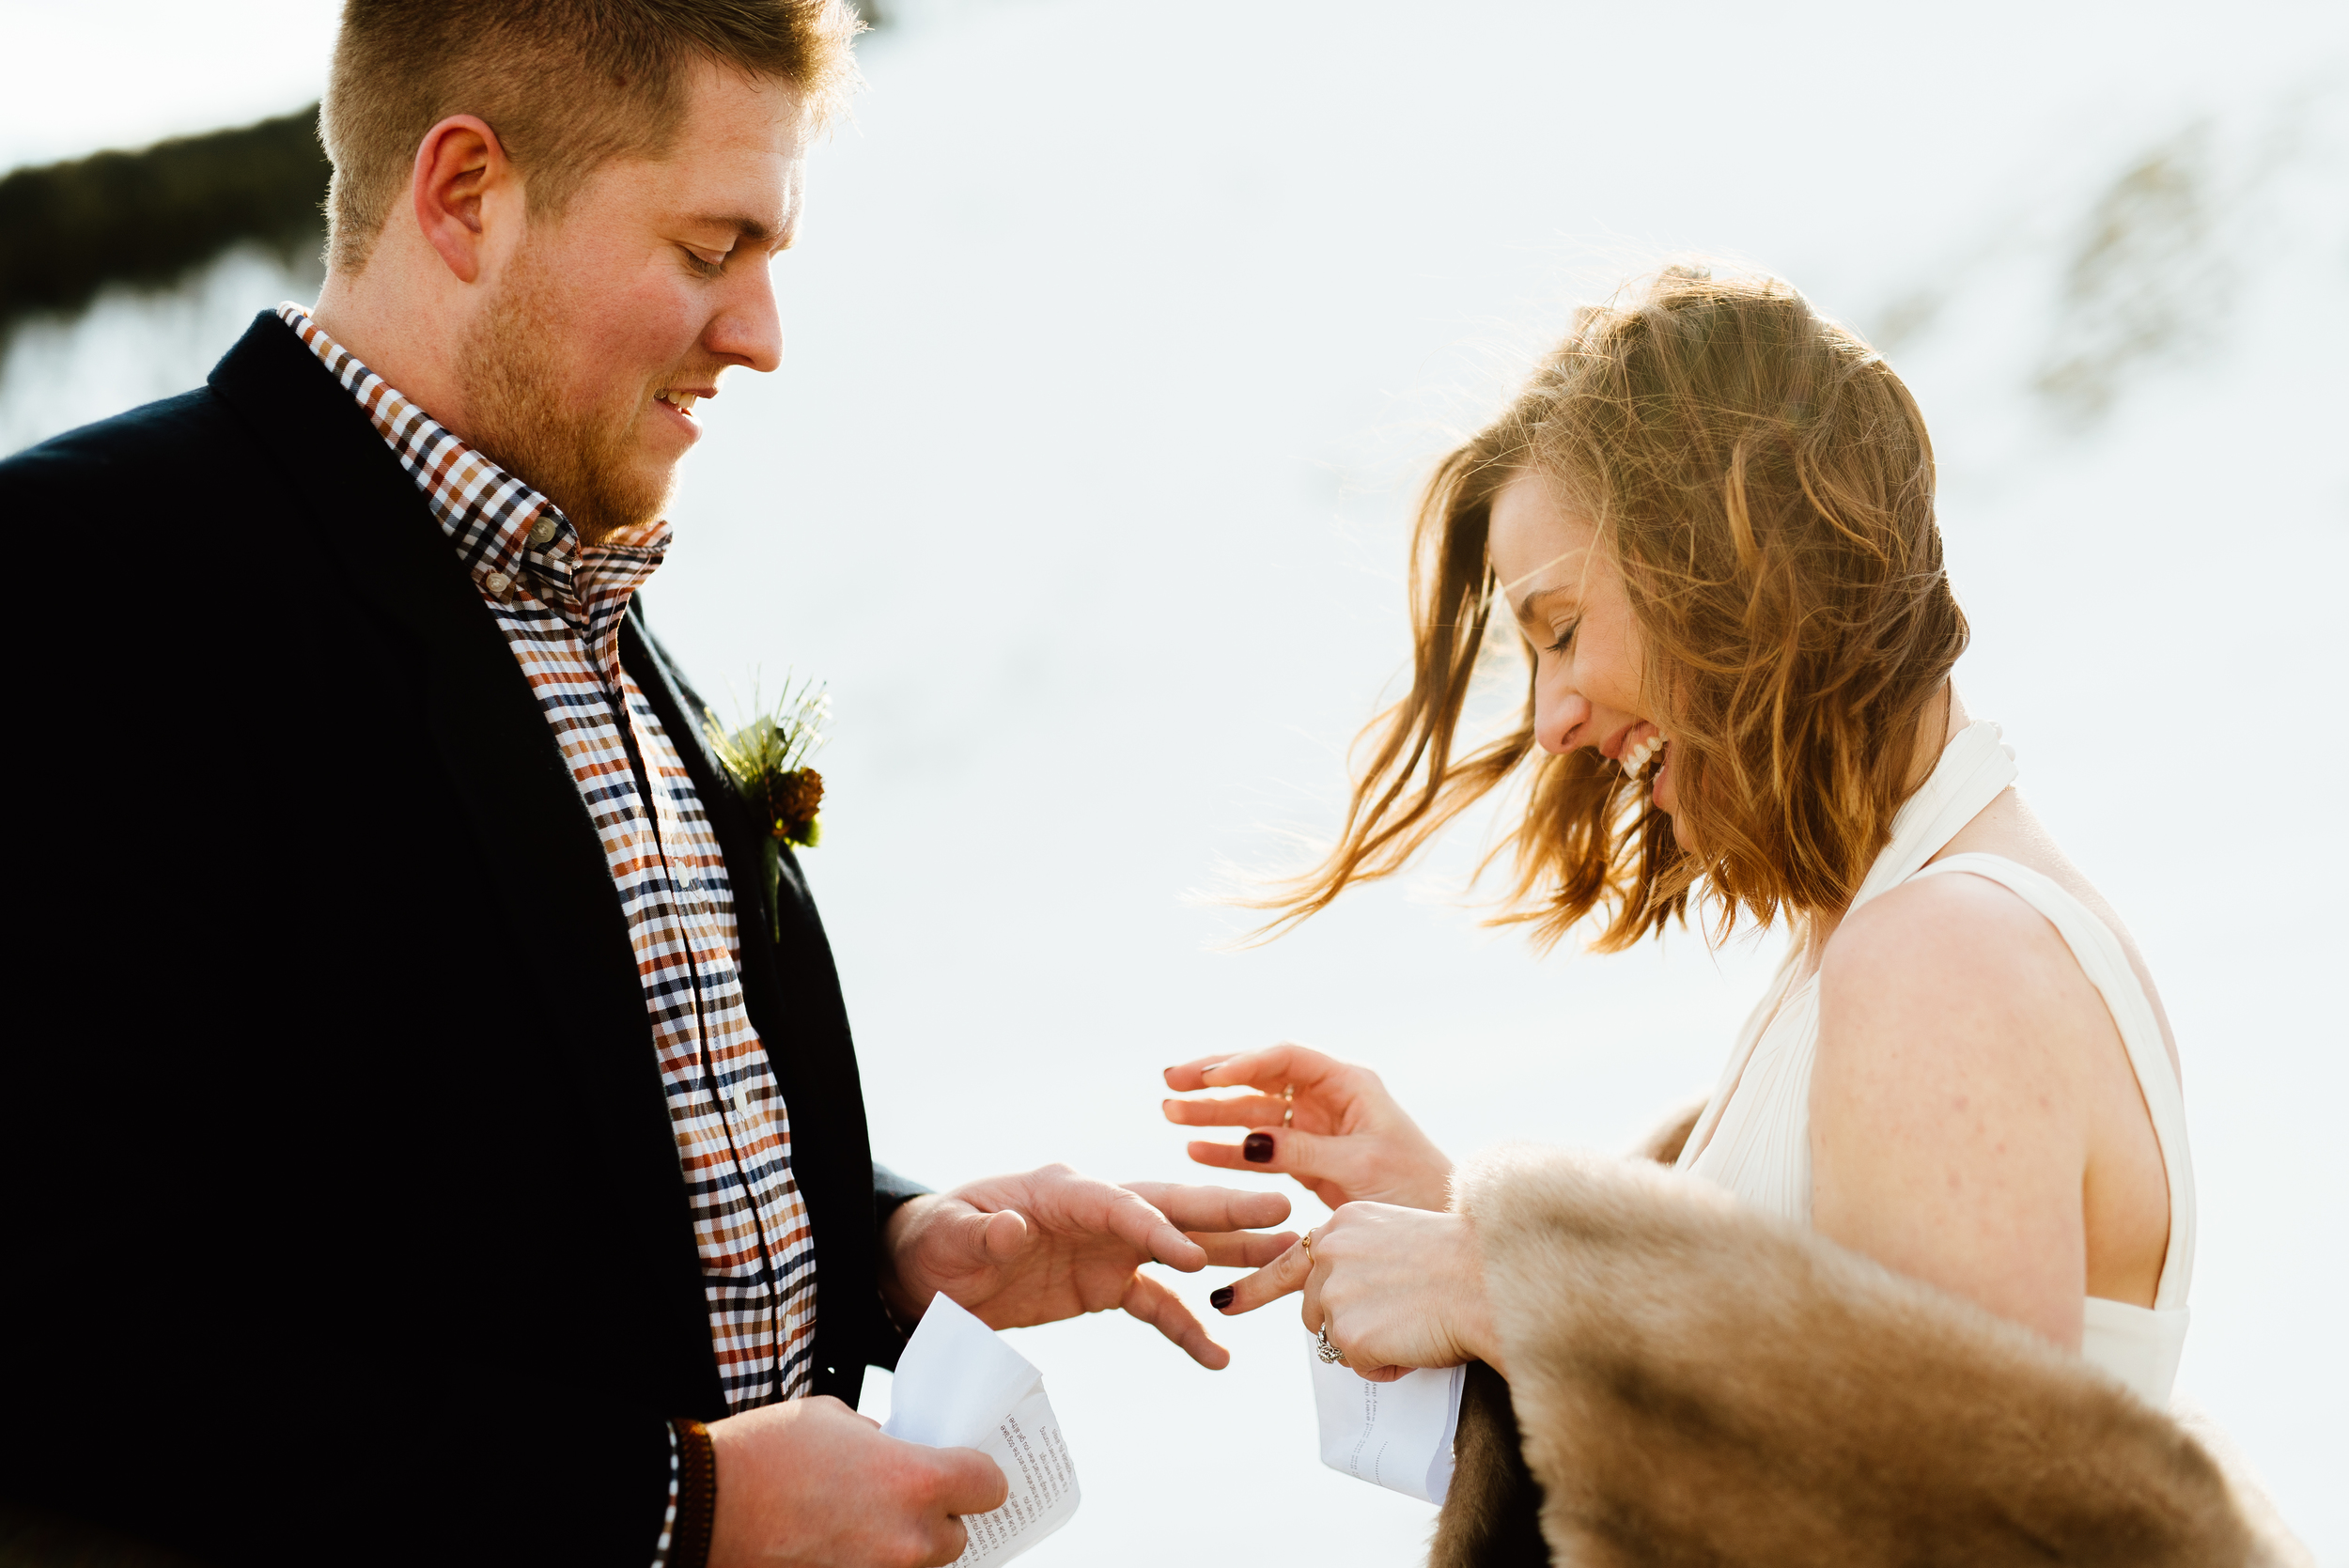 What a fun little snowy wedding ceremony up in the Rocky Mountains! I love Kelsie's fur shawl she is wearing over that gorgeous ivory wedding dress.| Intimate wedding photos by outdoor mountain elopement photographer, Maddie Mae.